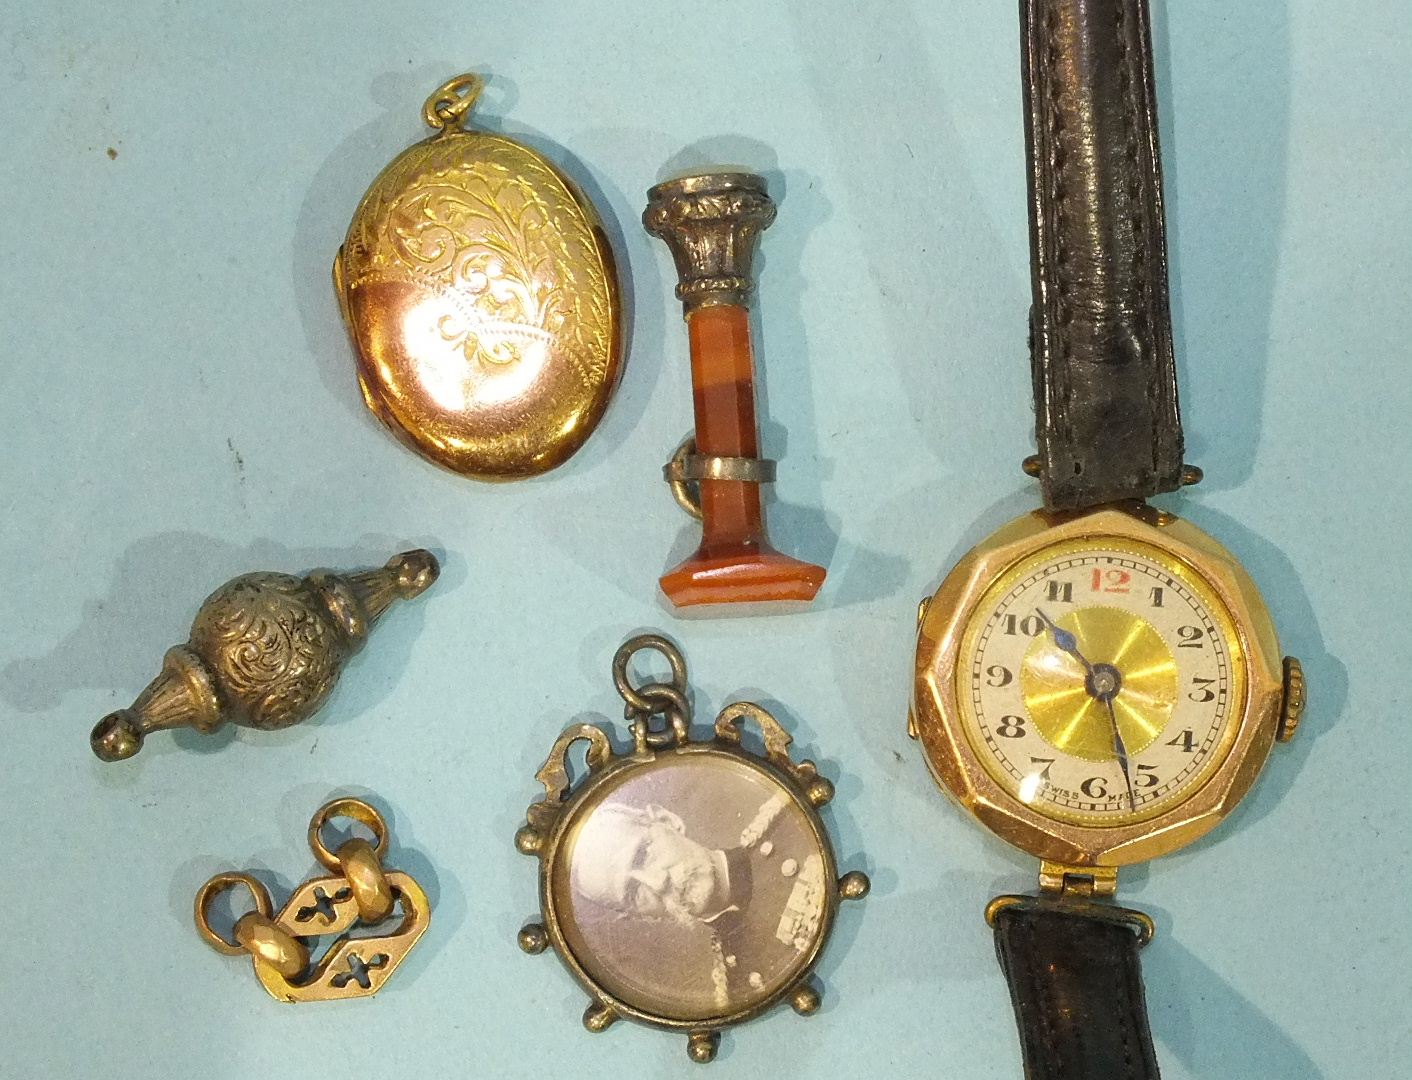 Lot 325 - A small 9ct gold faced locket, an agate seal, a gold cased wrist watch and other items.